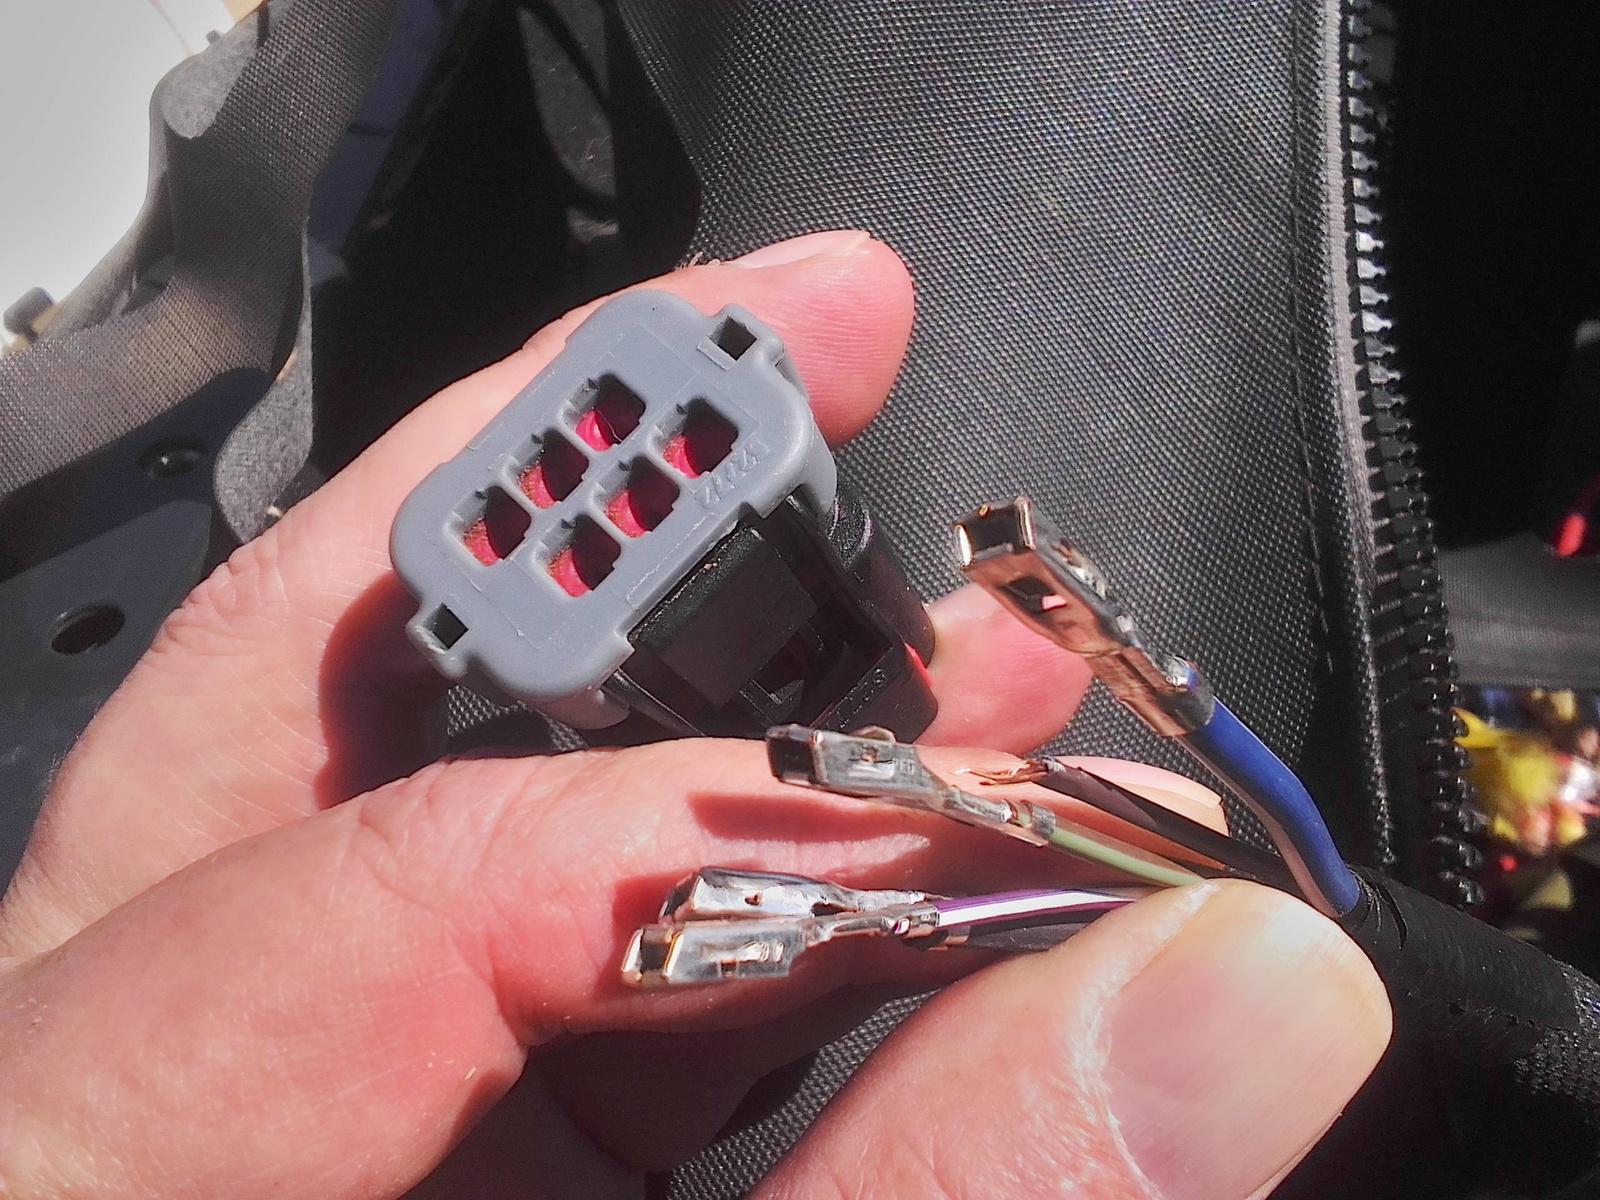 Jeep Wrangler Unlimited Questions - Can I fix harness - CarGurus on jeep trailer hitch wiring harness, jeep compass wiring harness, jeep rear wiper switch, jeep rear wiper motor,